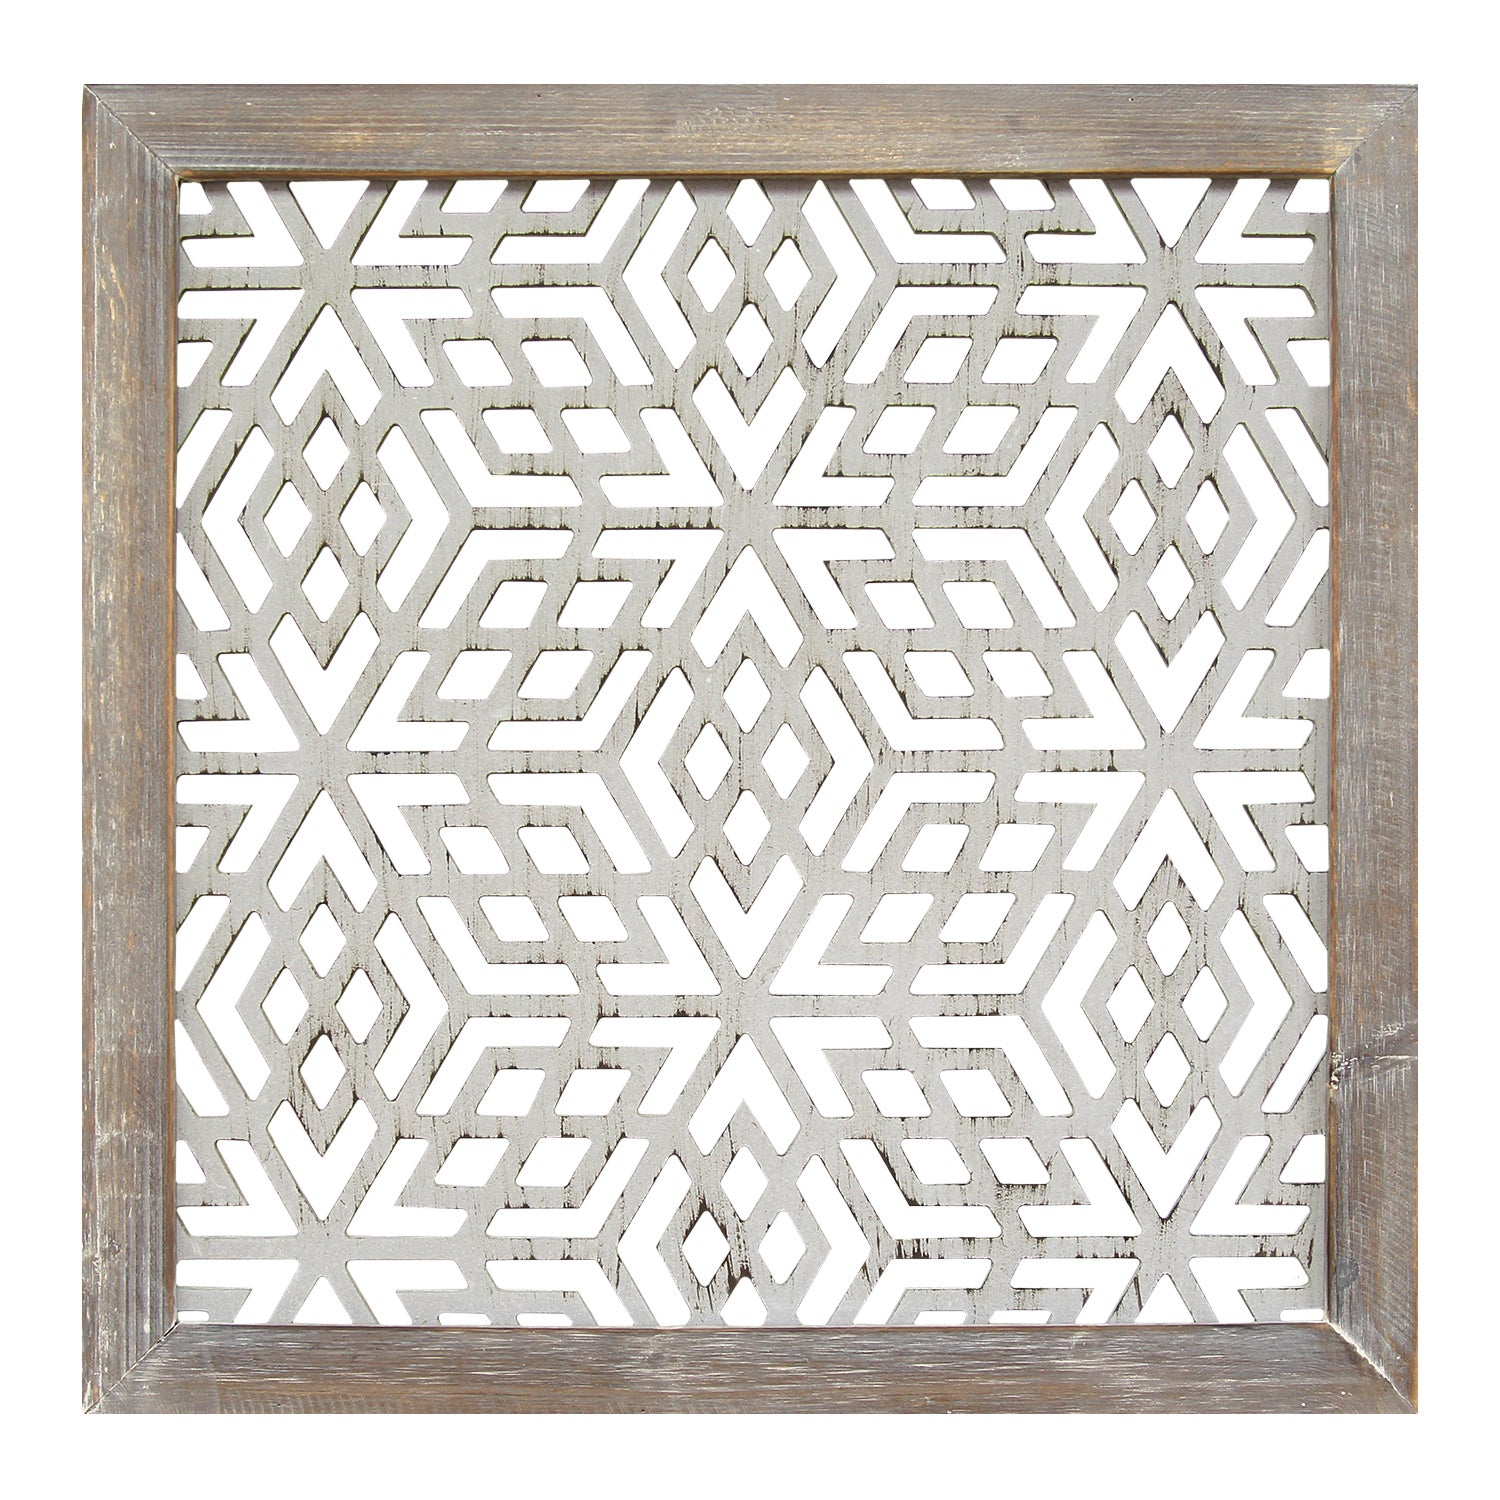 The Curated Nomad Stratton Home Decor Distressed Grey Wood Framed Laser-cut Metal Wall Art  sc 1 st  Overstock.com & Shop The Curated Nomad Stratton Home Decor Distressed Grey Wood ...